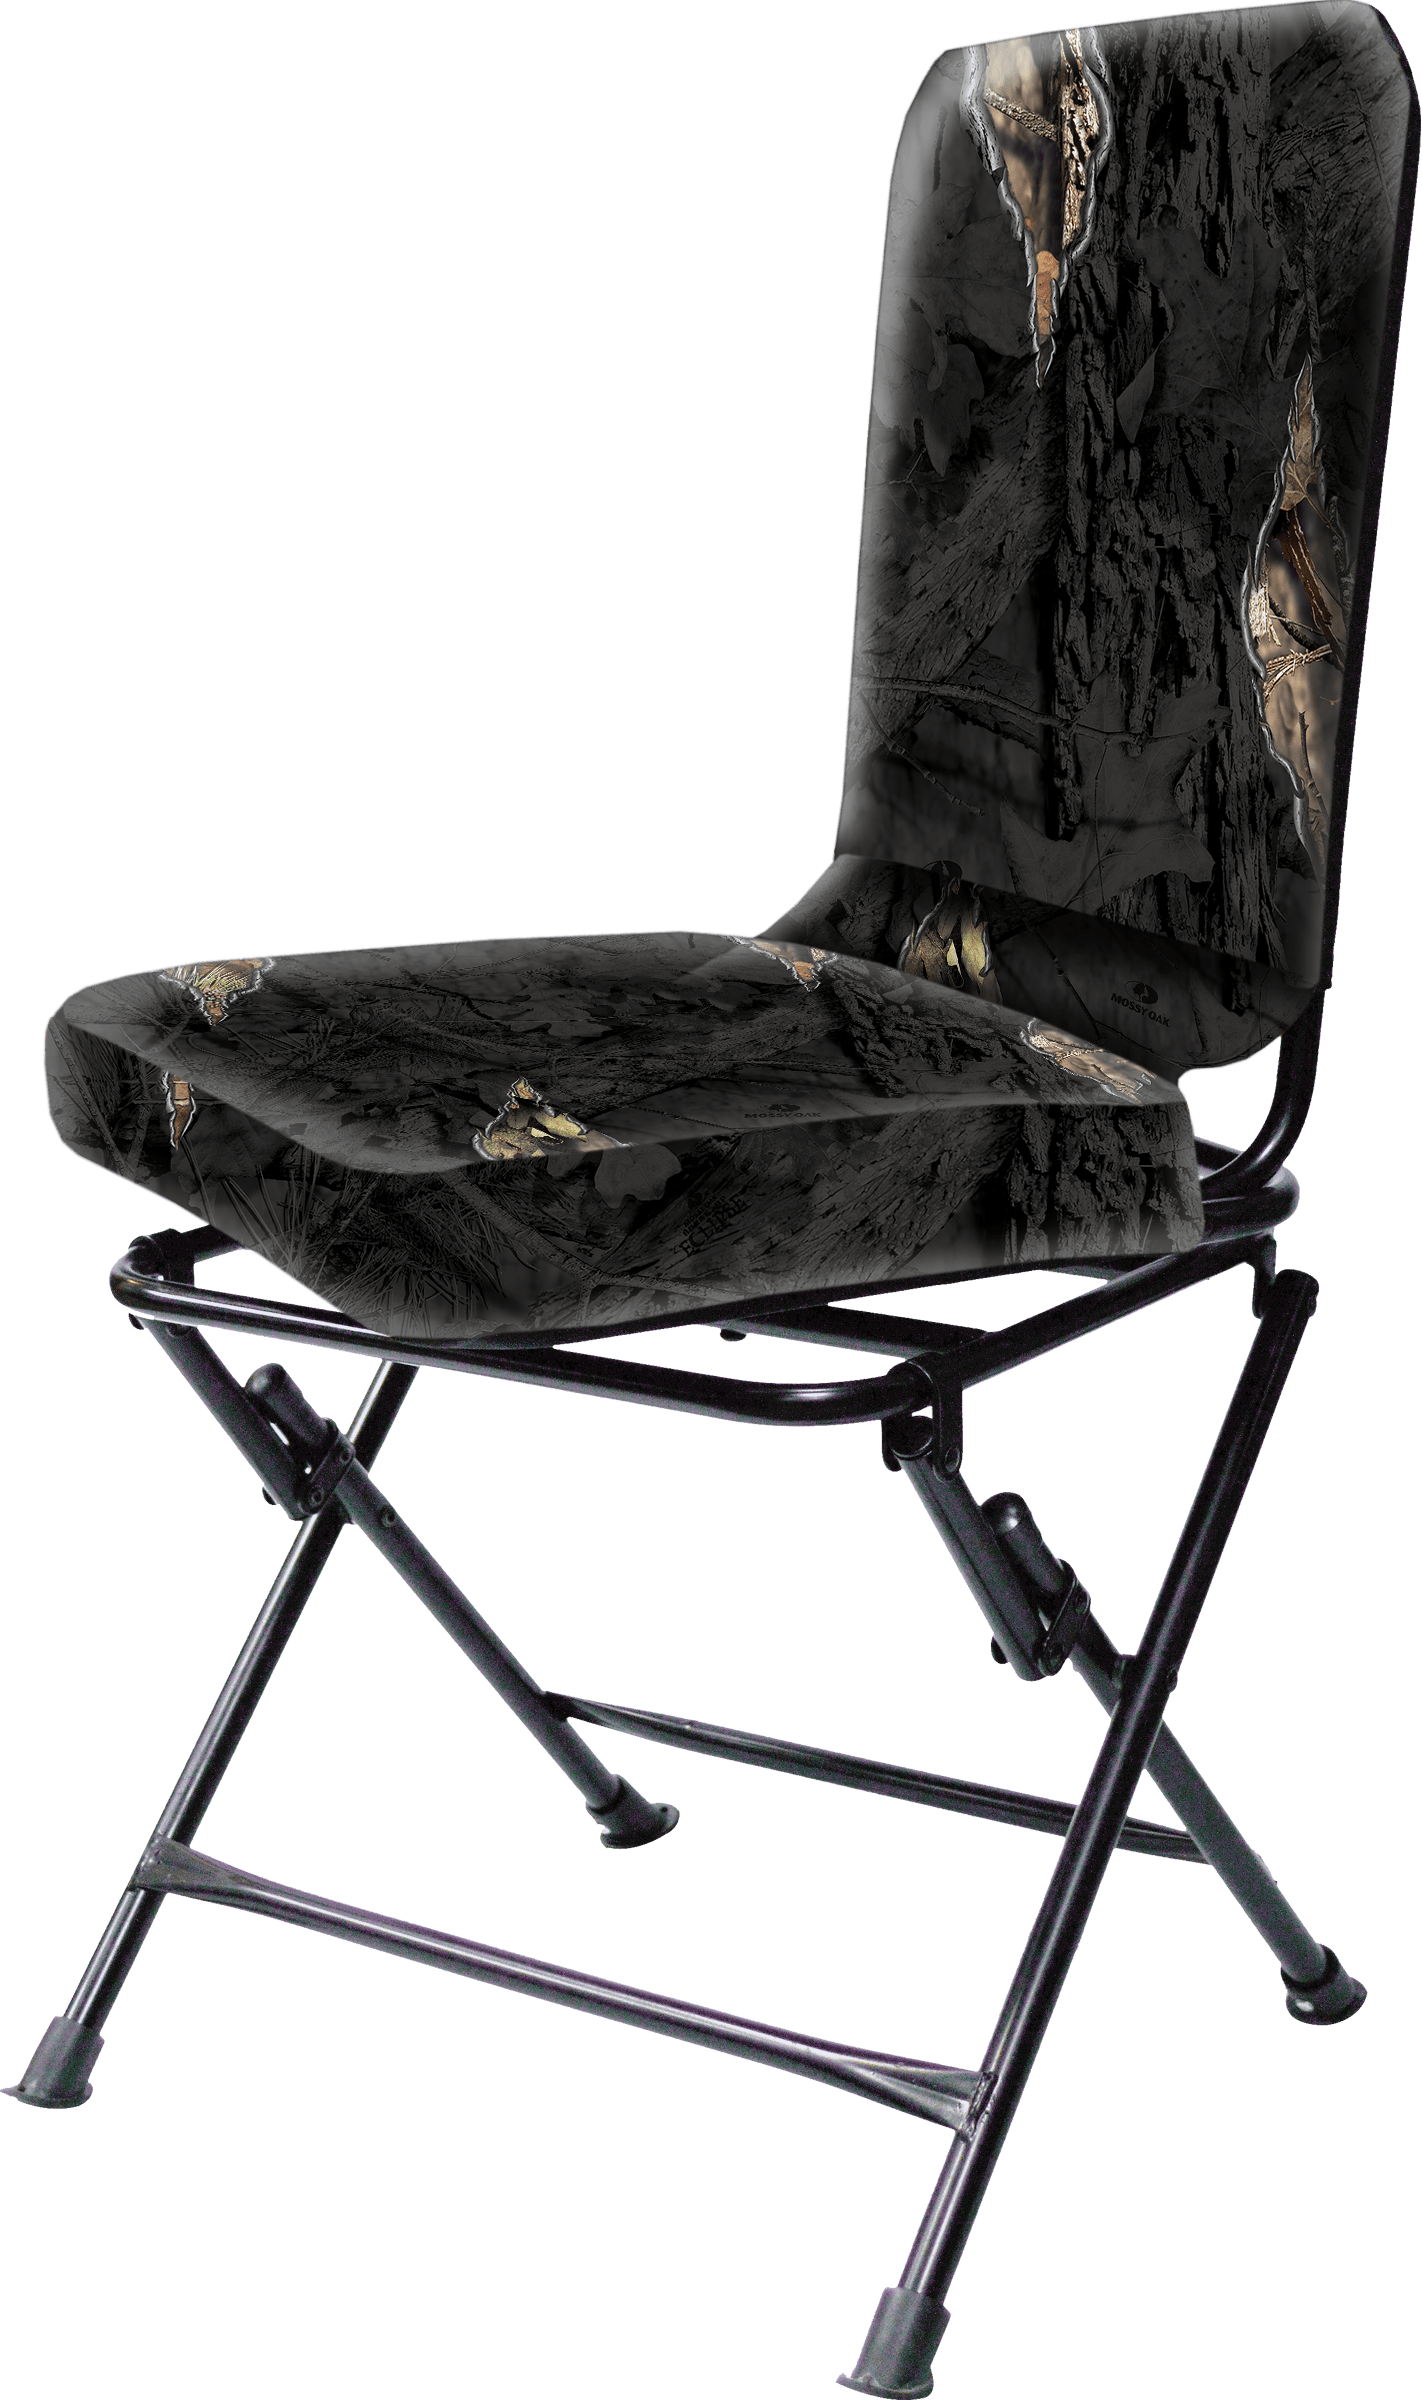 summit trophy chair review posture problems hunting chairs swivel blind with eclipse pattern